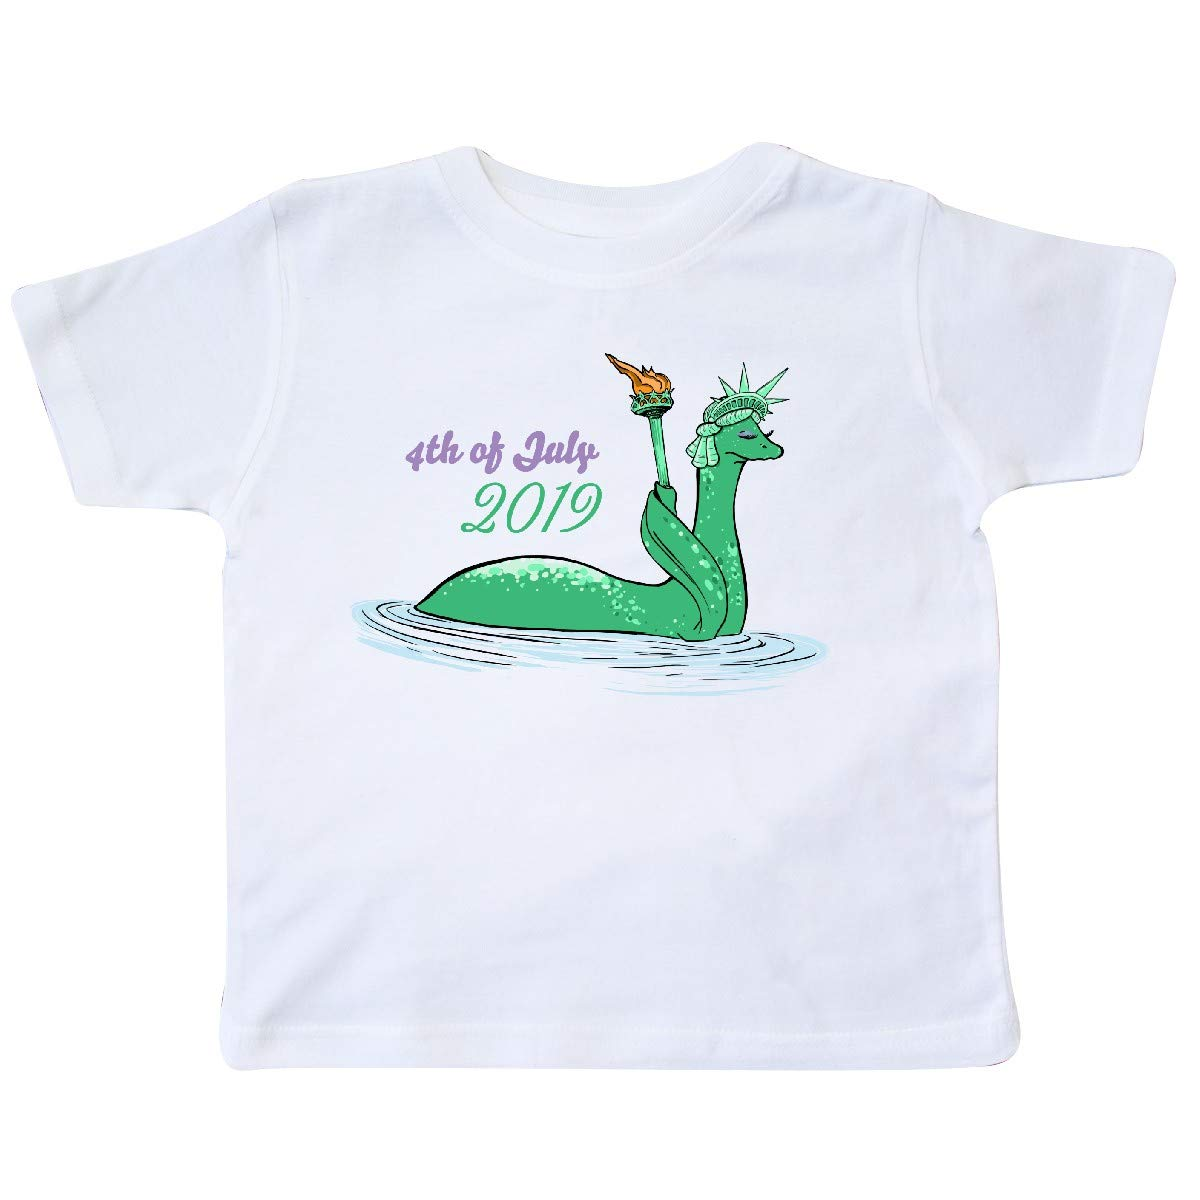 Nessie Lady Liberty 4th Of July 2019 T Shirt 3650a 5759